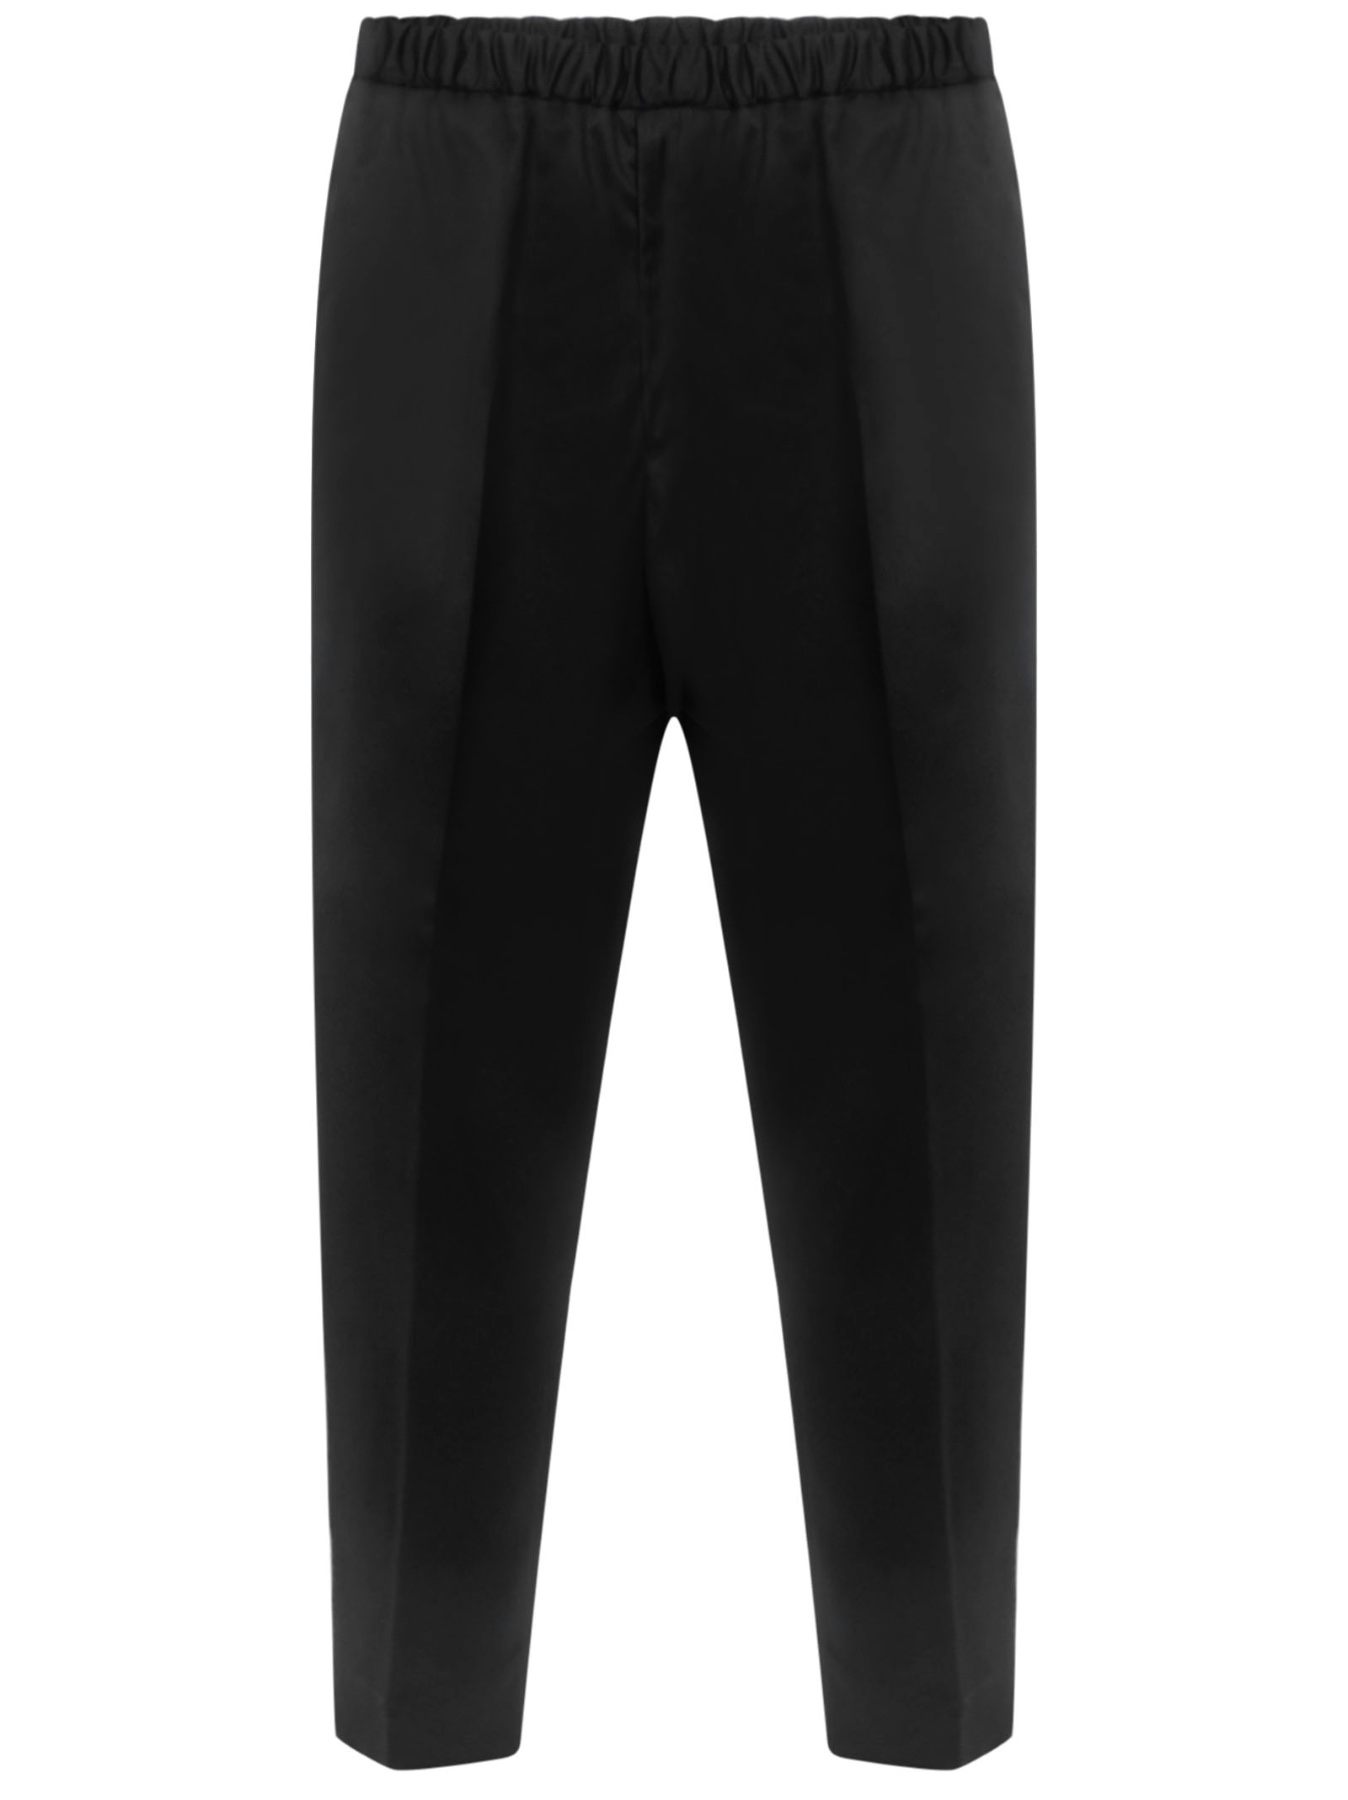 Jil Sander regular pants